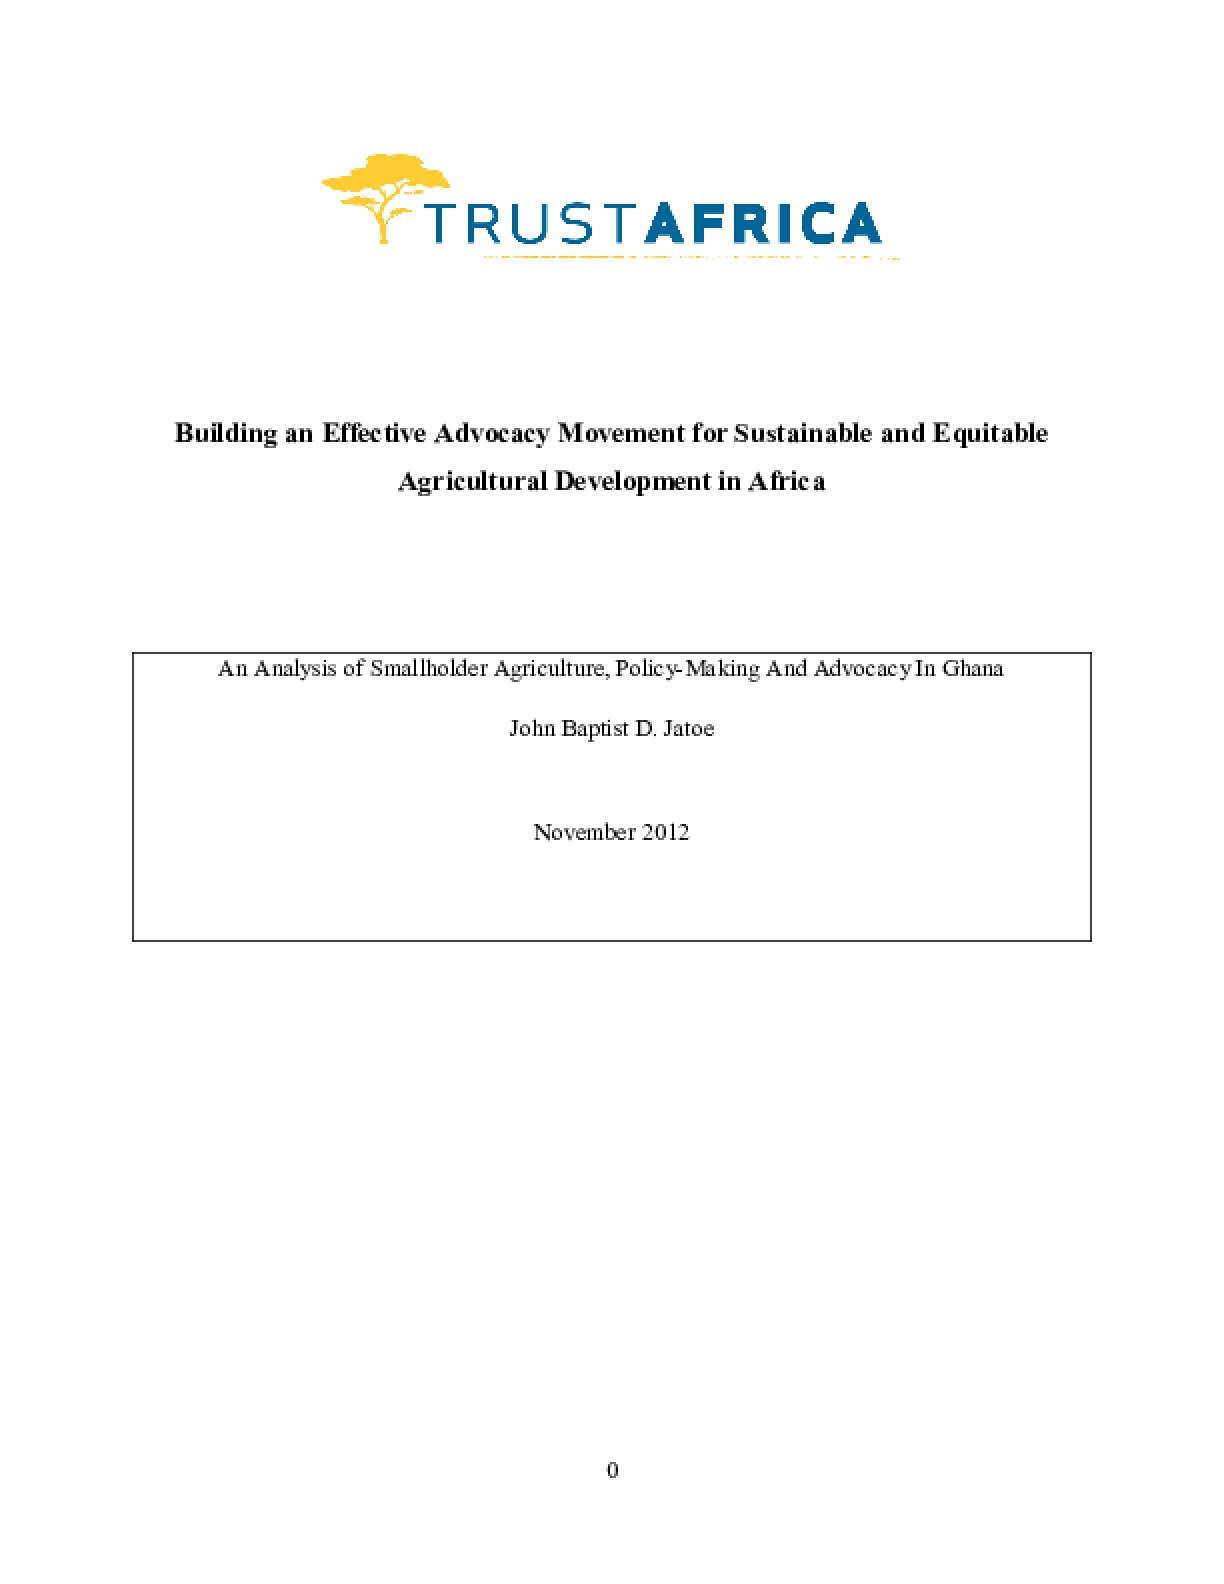 Building an Effective Advocacy Movement for Sustainable and Equitable Agricultural Development in Africa: An Analysis of Smallholder Agriculture, Policy-Making and Advocacy in Ghana